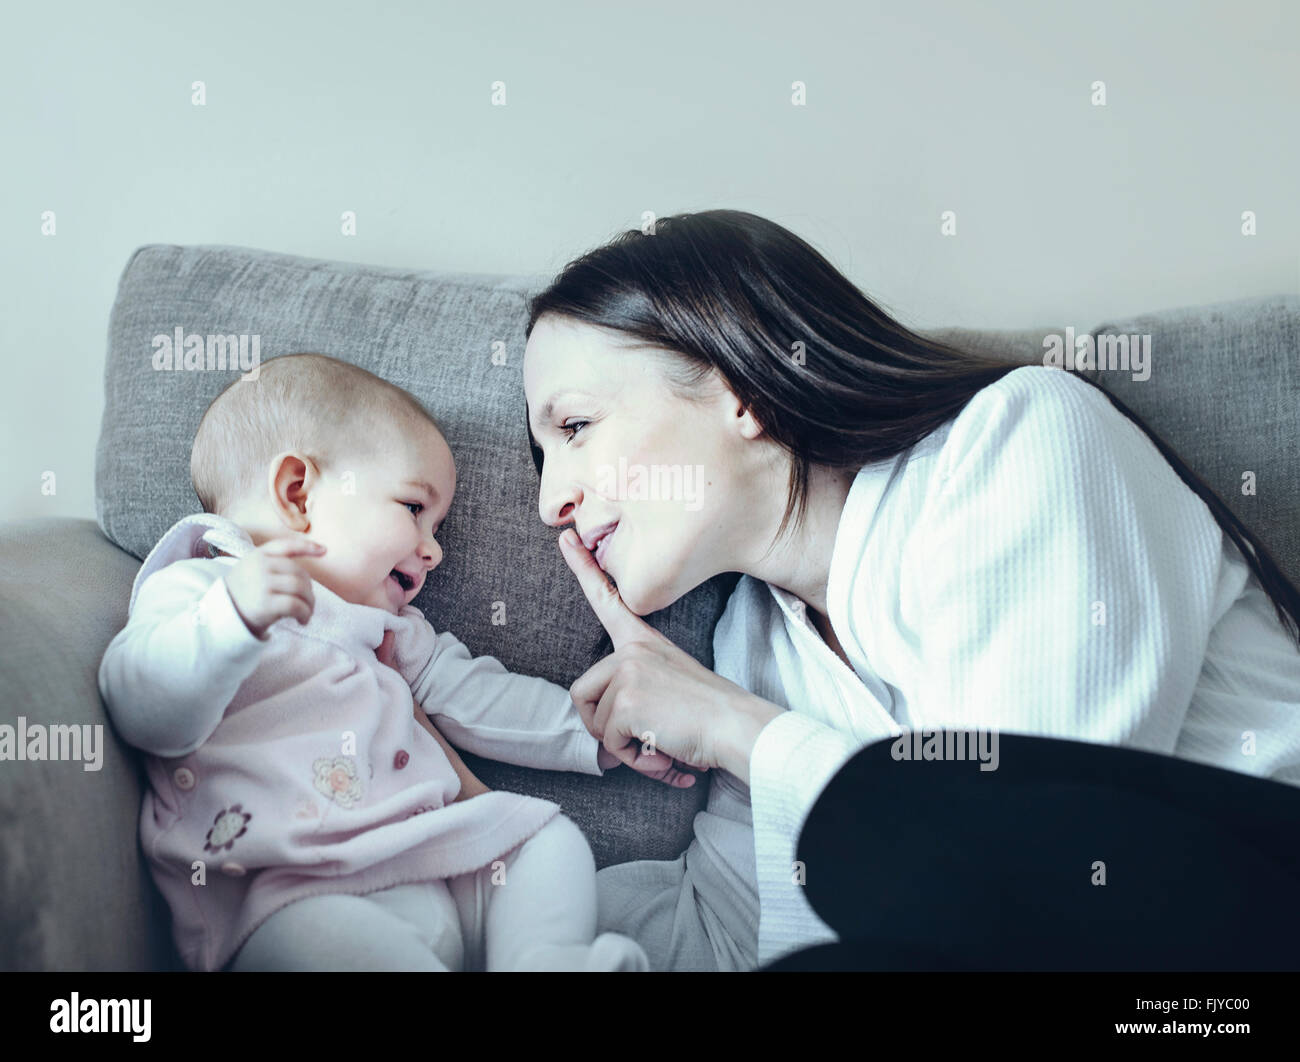 young woman playing with her baby girl on the sofa bed - Stock Image